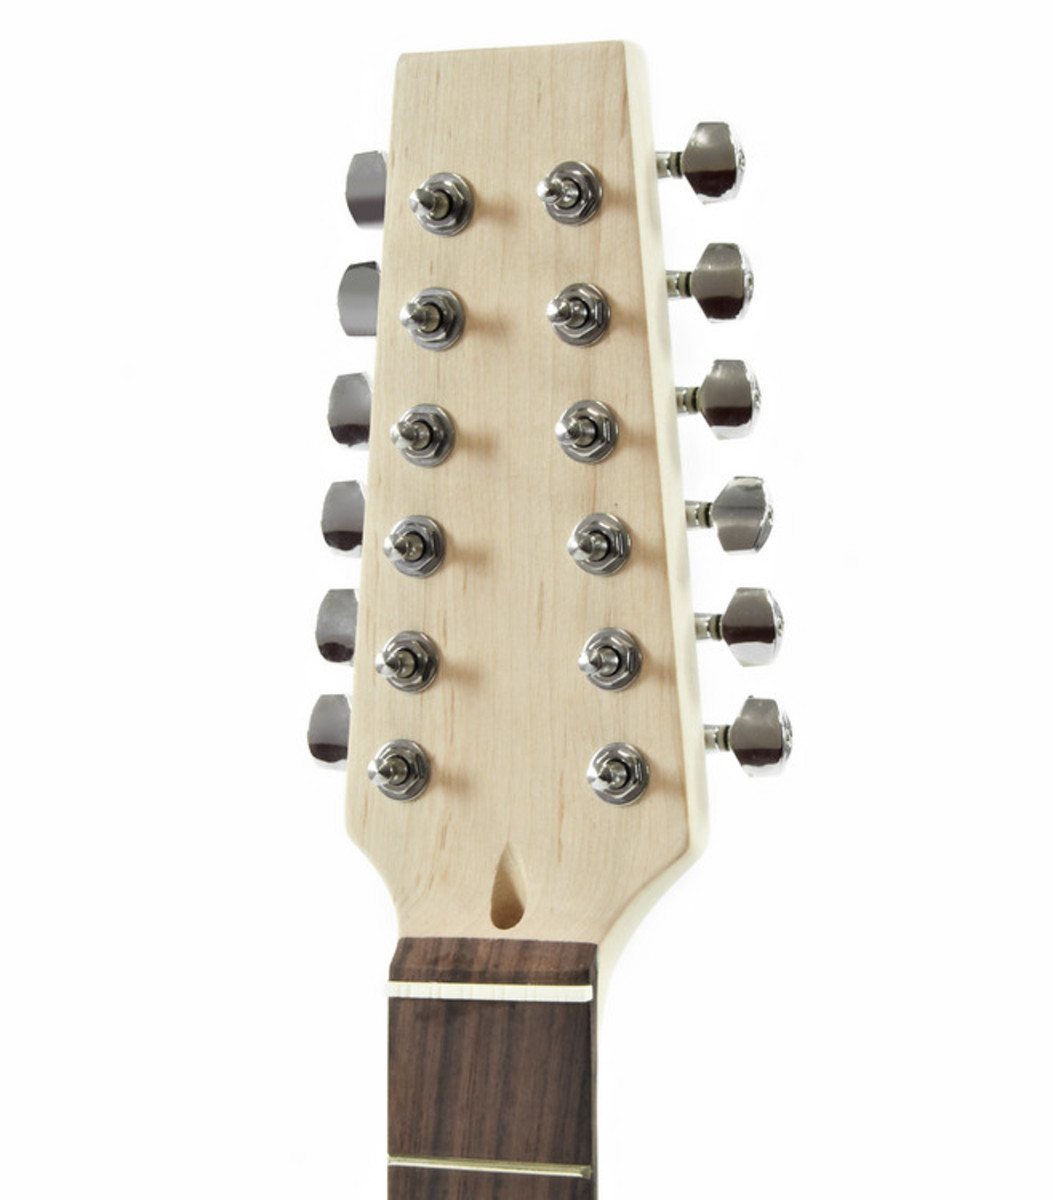 12 String La Electric Guitar Kit Cheap 12 String Neck Offsetguitars